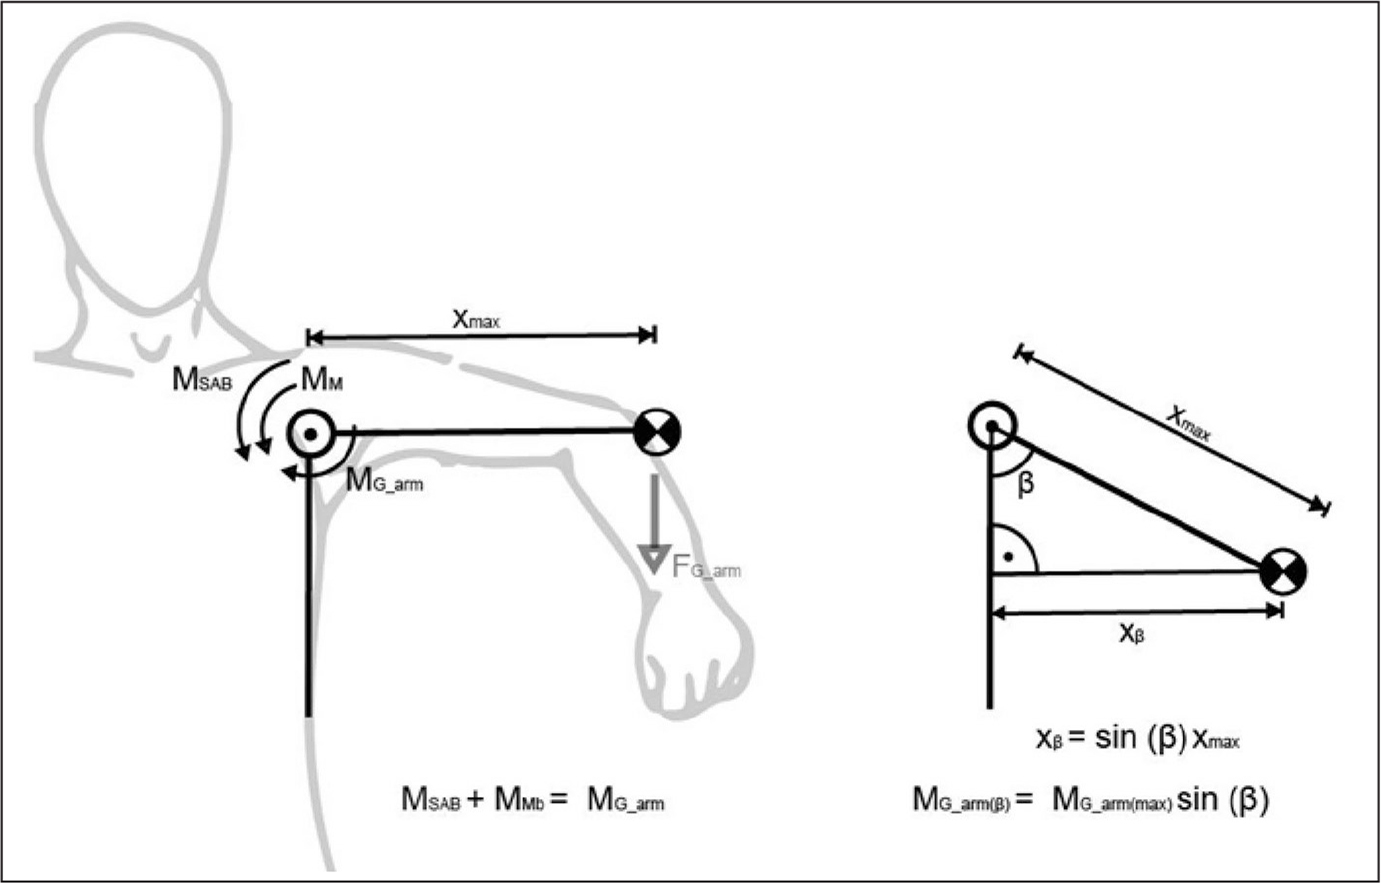 Calculation of muscular abduction moment. MSAB is the measured moment from the shoulder abduction brace. MM is the moment generated by shoulder muscles. MG_arm represents the moment generated by the patient's arm weight (FG_arm). Moment MG_arm is dependent on the lever arm x (distance to the glenohumeral joint and the arm's center of mass) and the arm mass. In a 90° configuration, it can be assumed that the lever arm x has reached its maximum length (xmax). By means of trigonometry, a theoretical moment MG_arm can therefore be calculated for other angles beta (30°, 50°, and 70°). By rearranging the sum of the moment equation, the theoretical moment generated by the muscles MM can therefore be calculated.